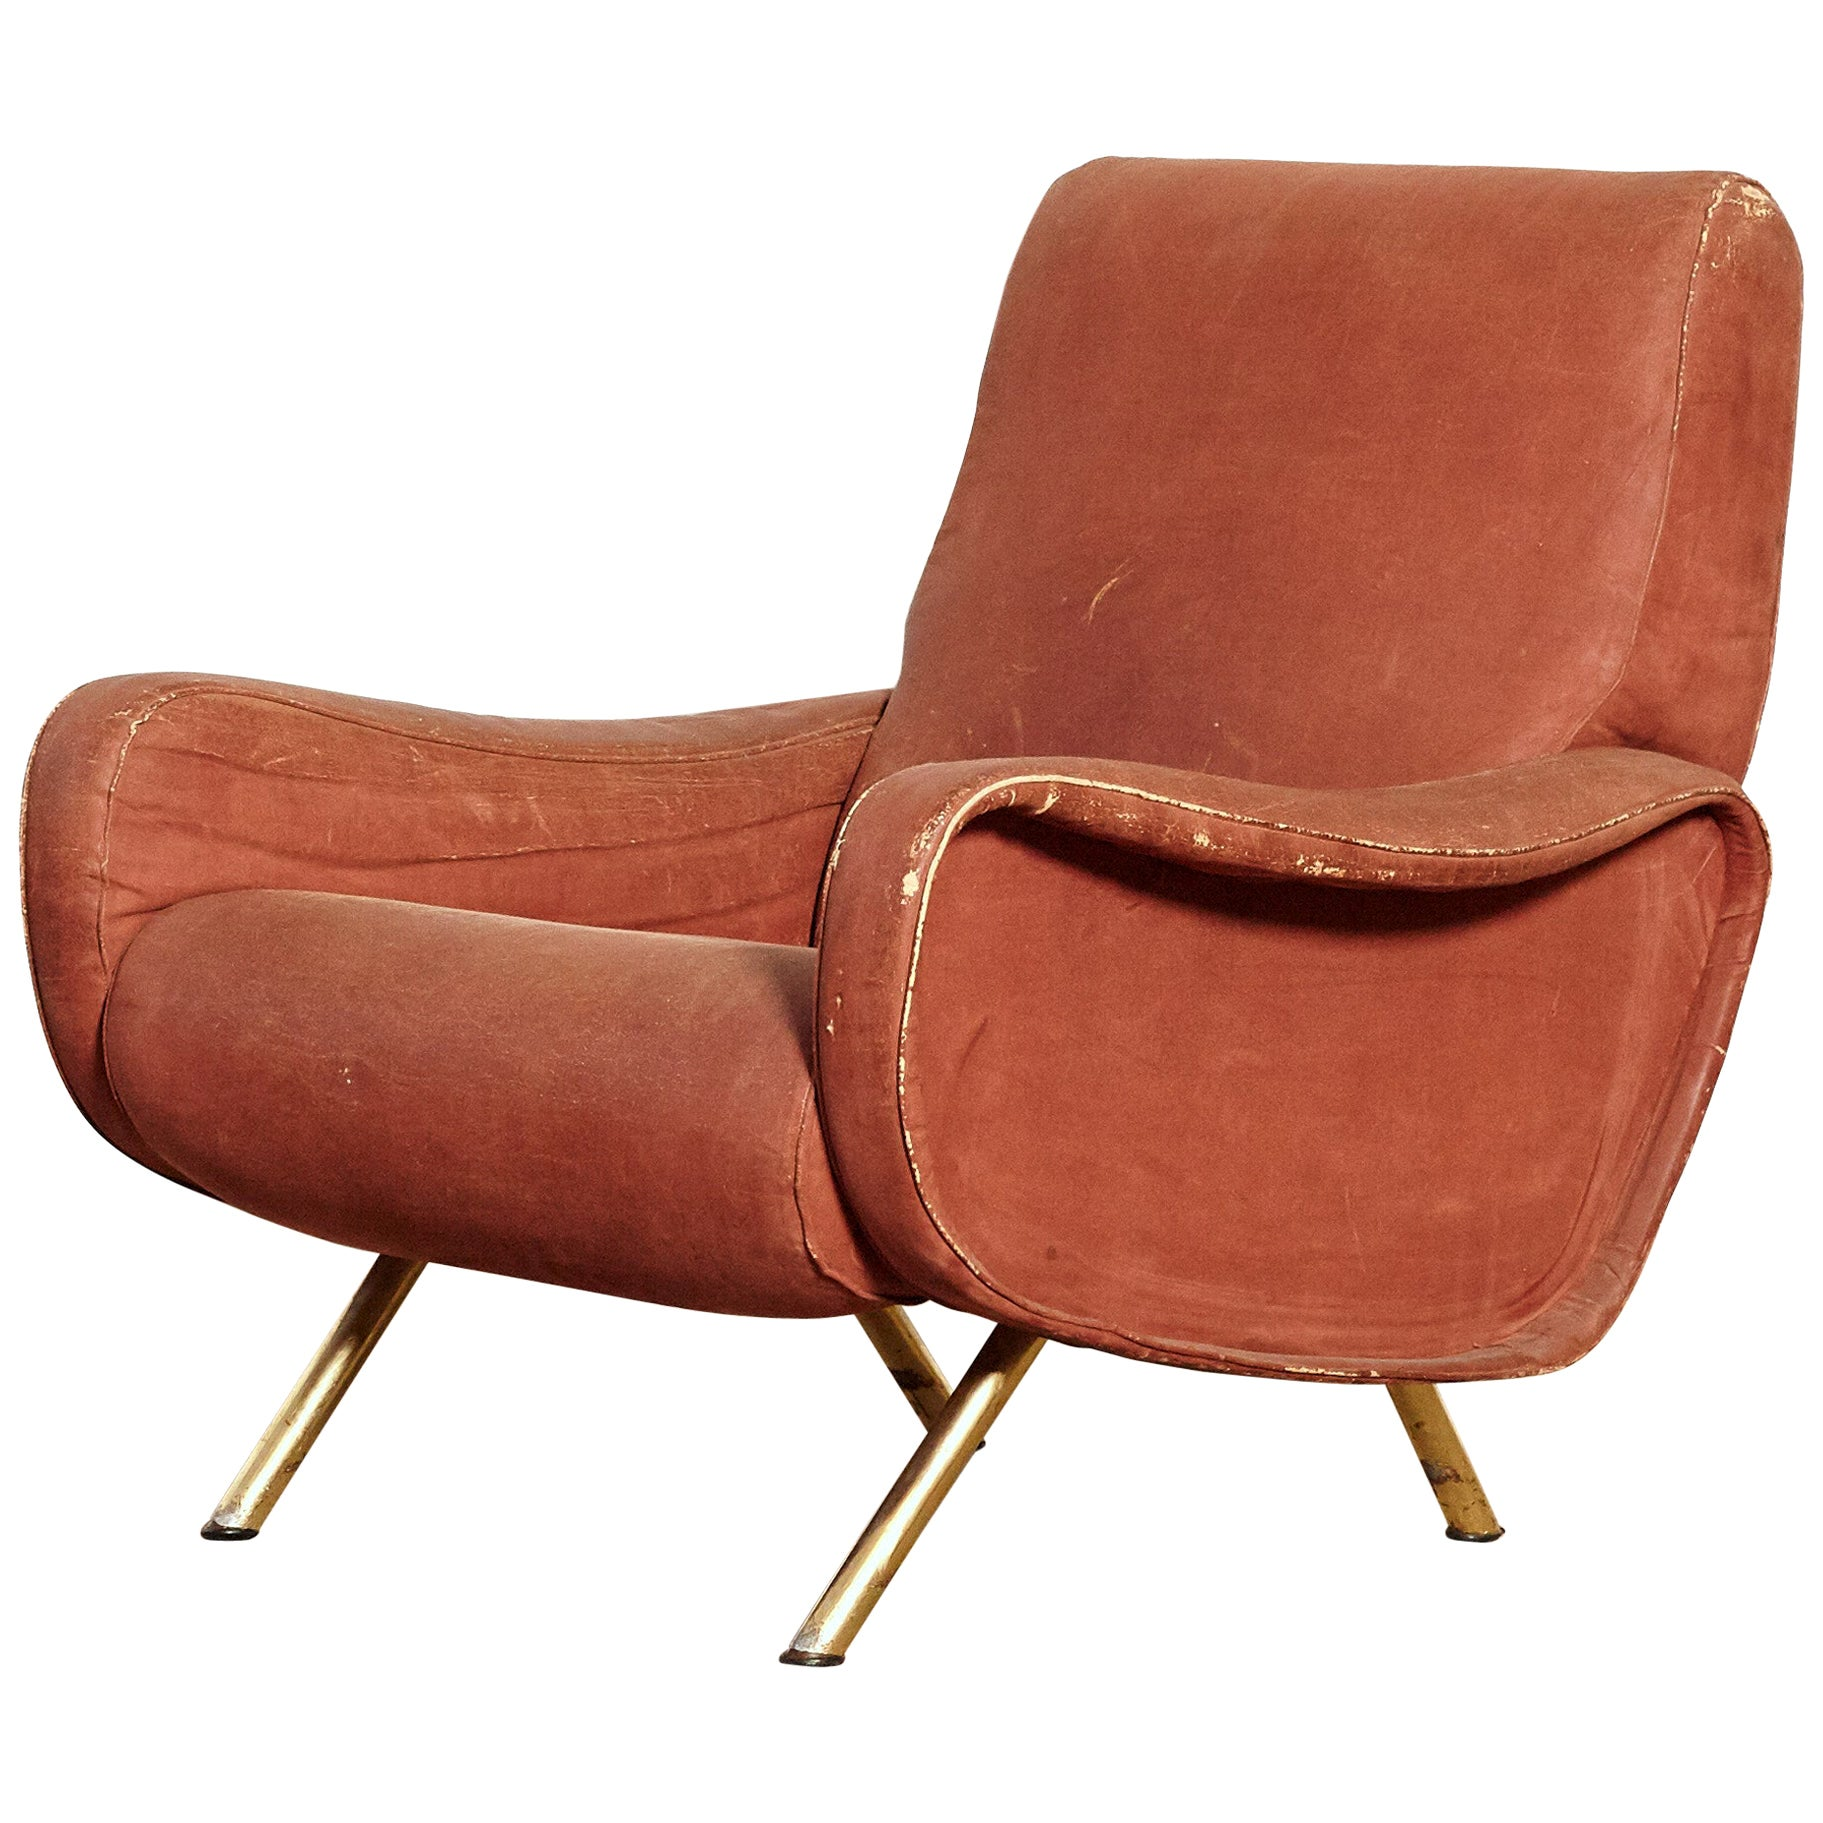 Authentic Marco Zanuso Lady Chair, Arflex, Italy, 1960s for Re-Upholstery